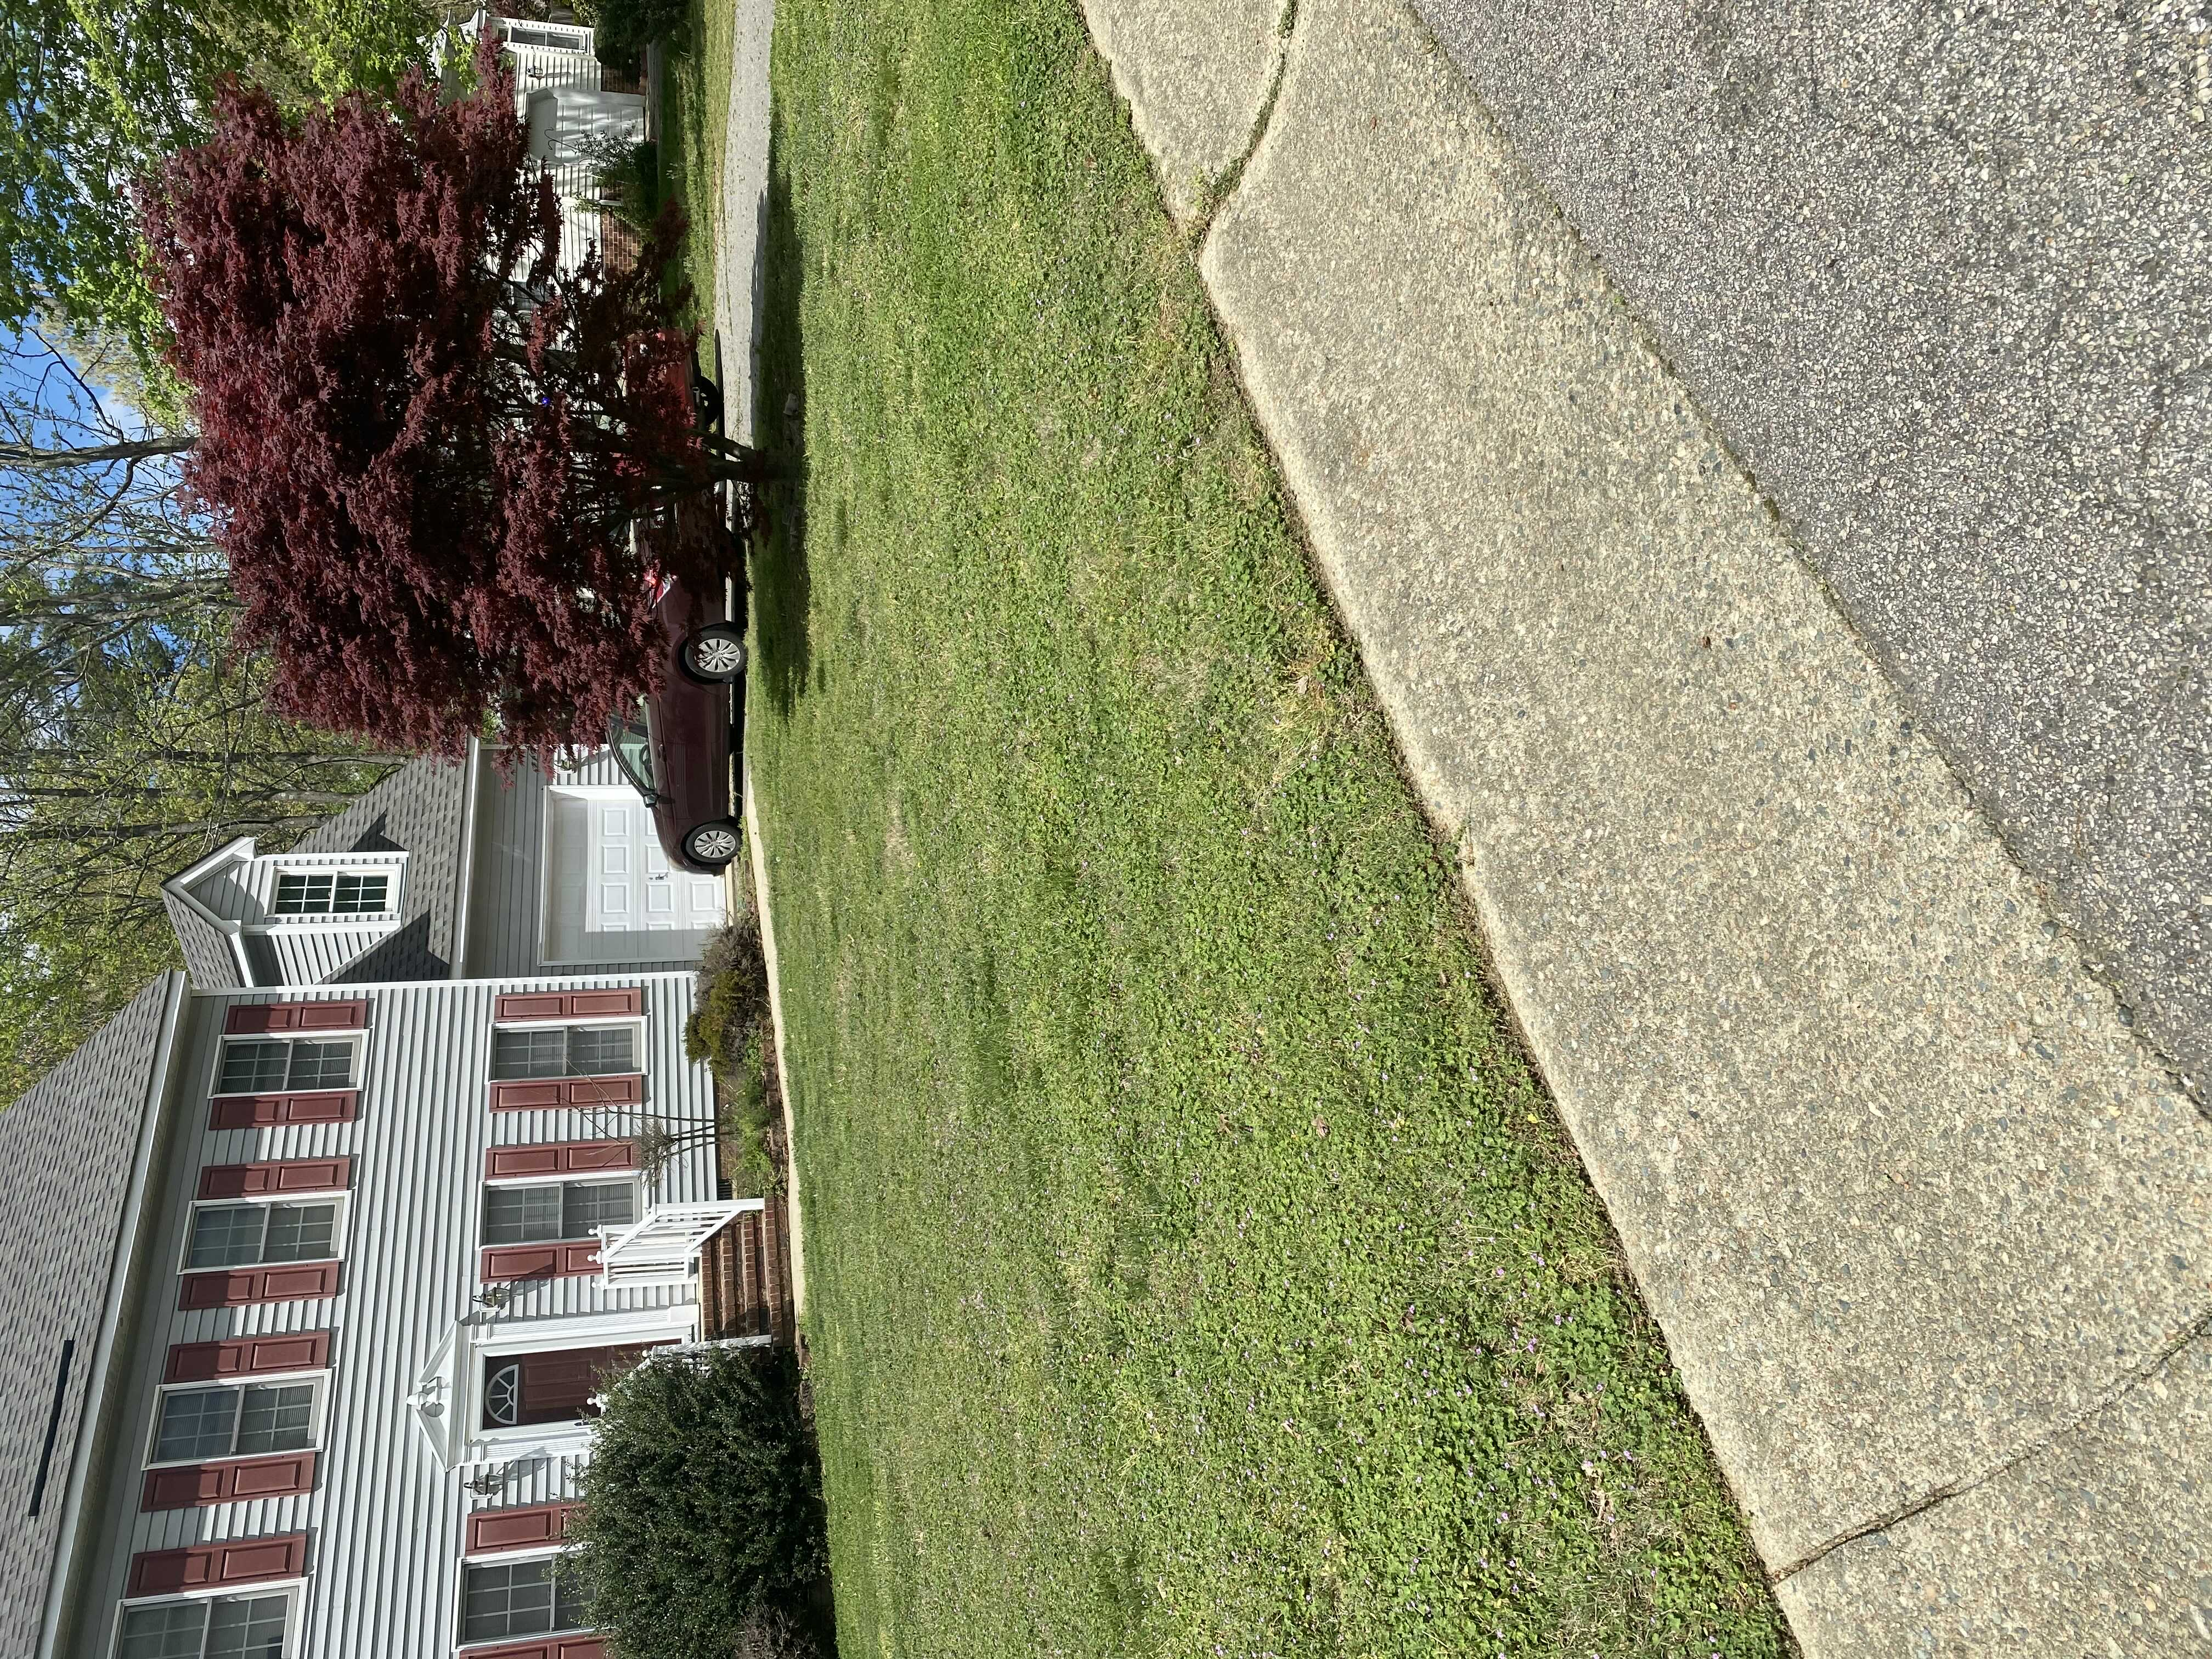 Lawn and Yard Work Project